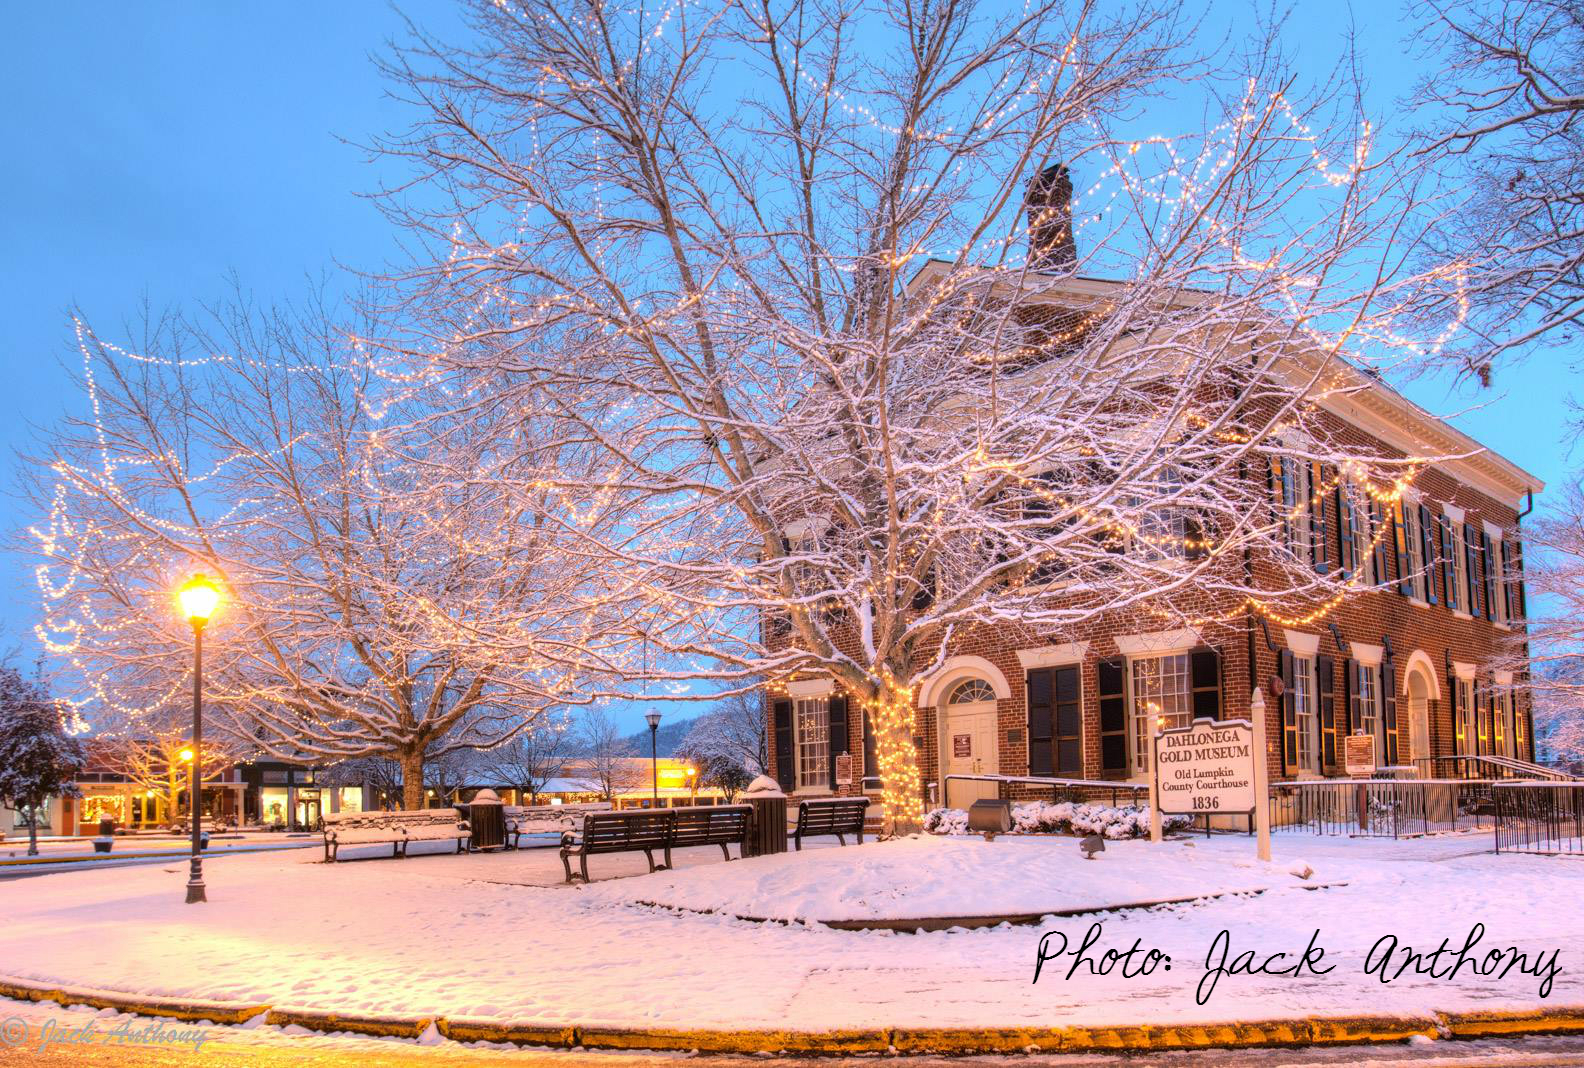 Dahlonega Ga Christmas.In December All Was Merry And Bright At Cranberry Corners